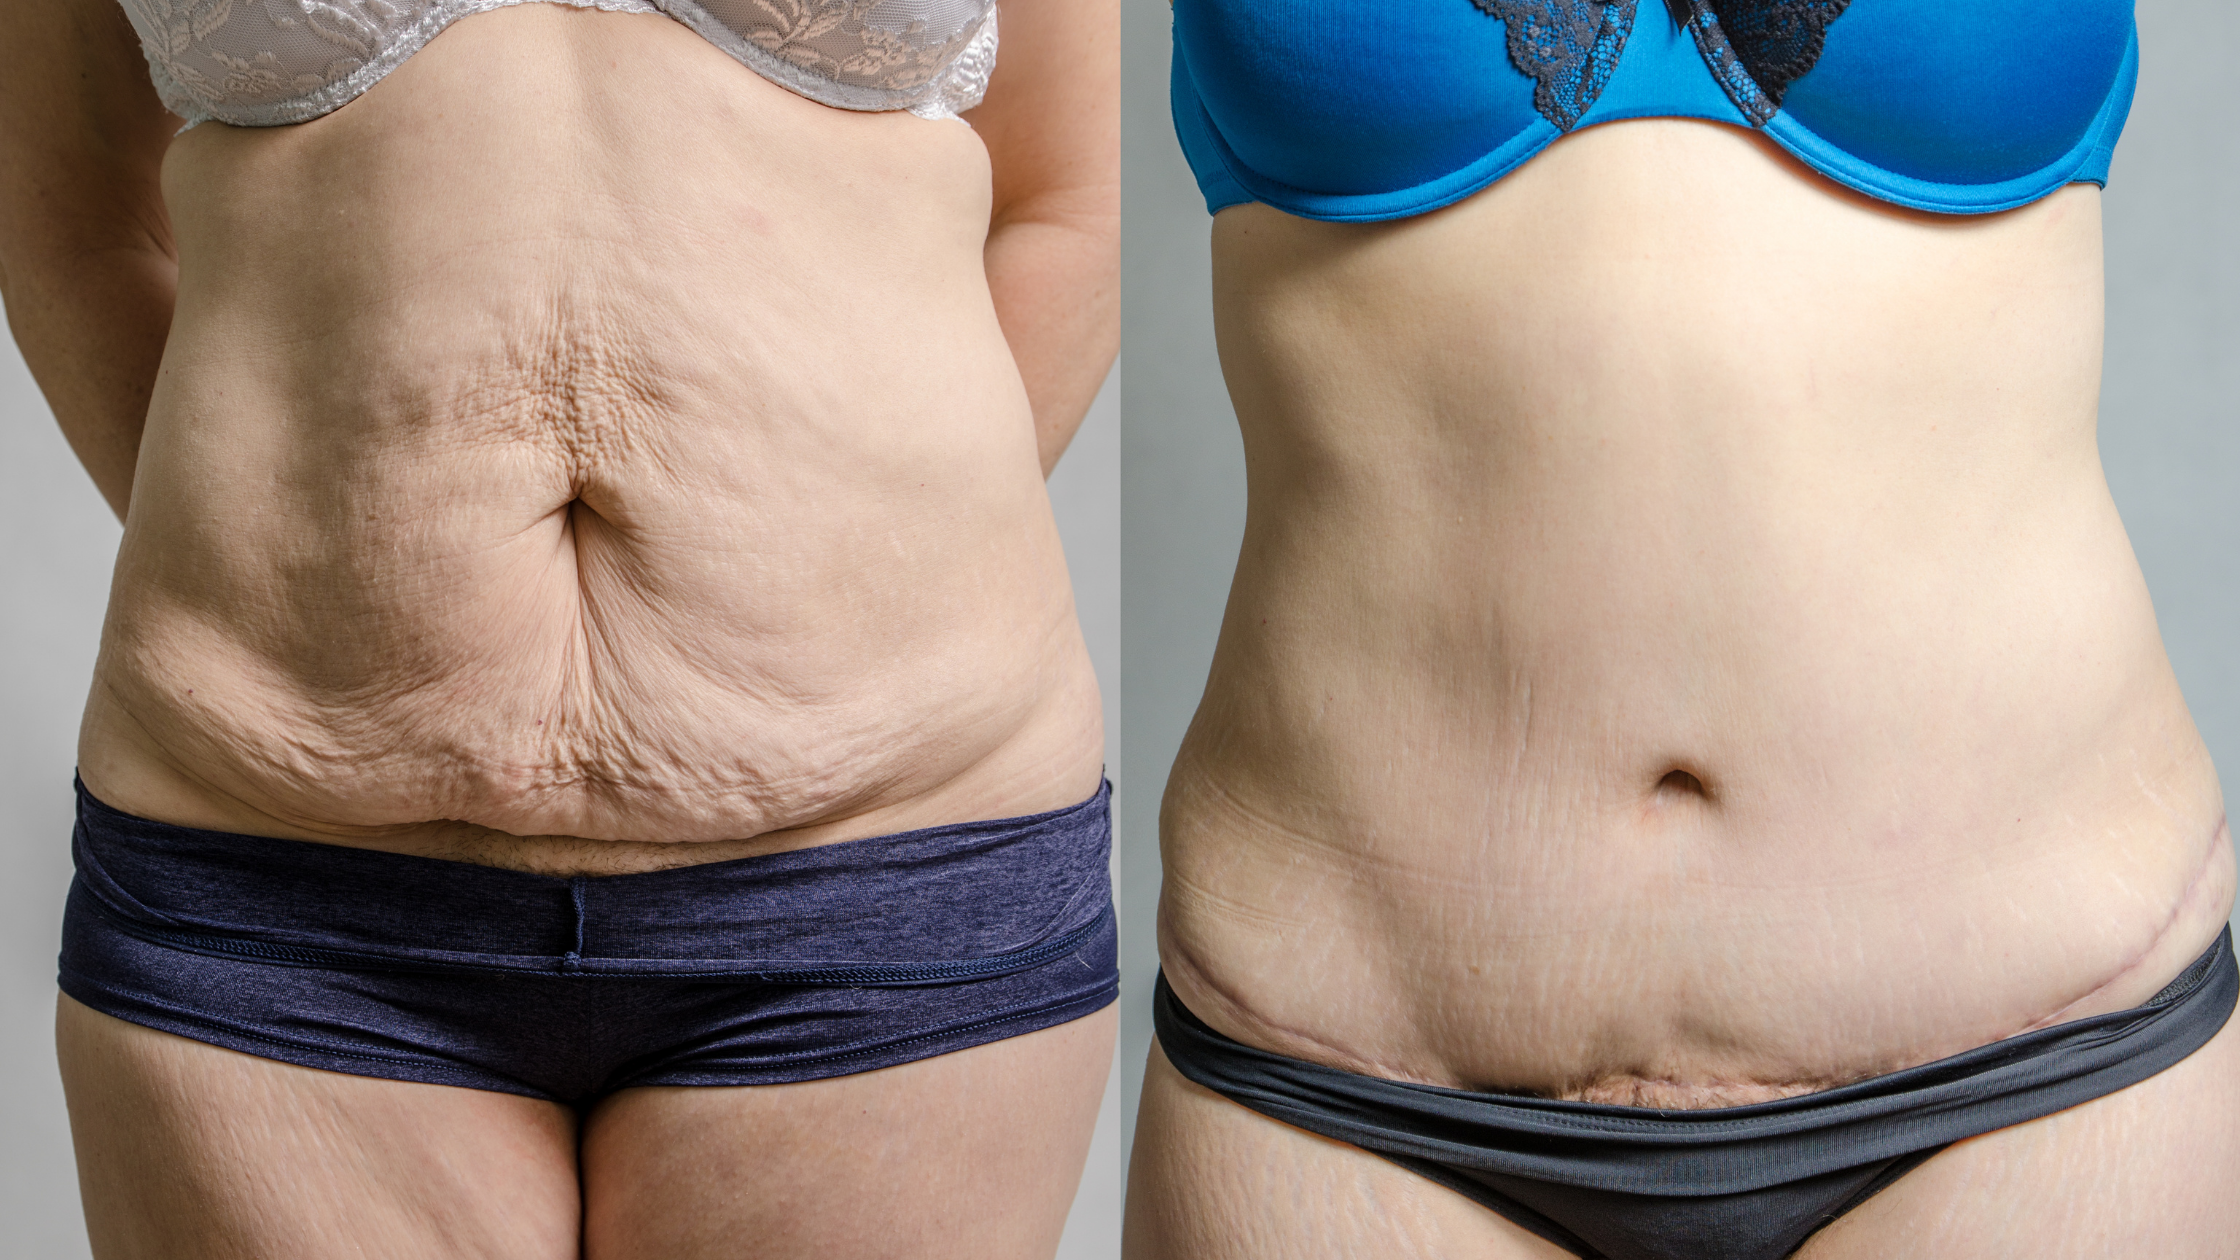 Tummy Tuck Surgery, Abdominoplasty Packages in Thailand & Malaysia ...